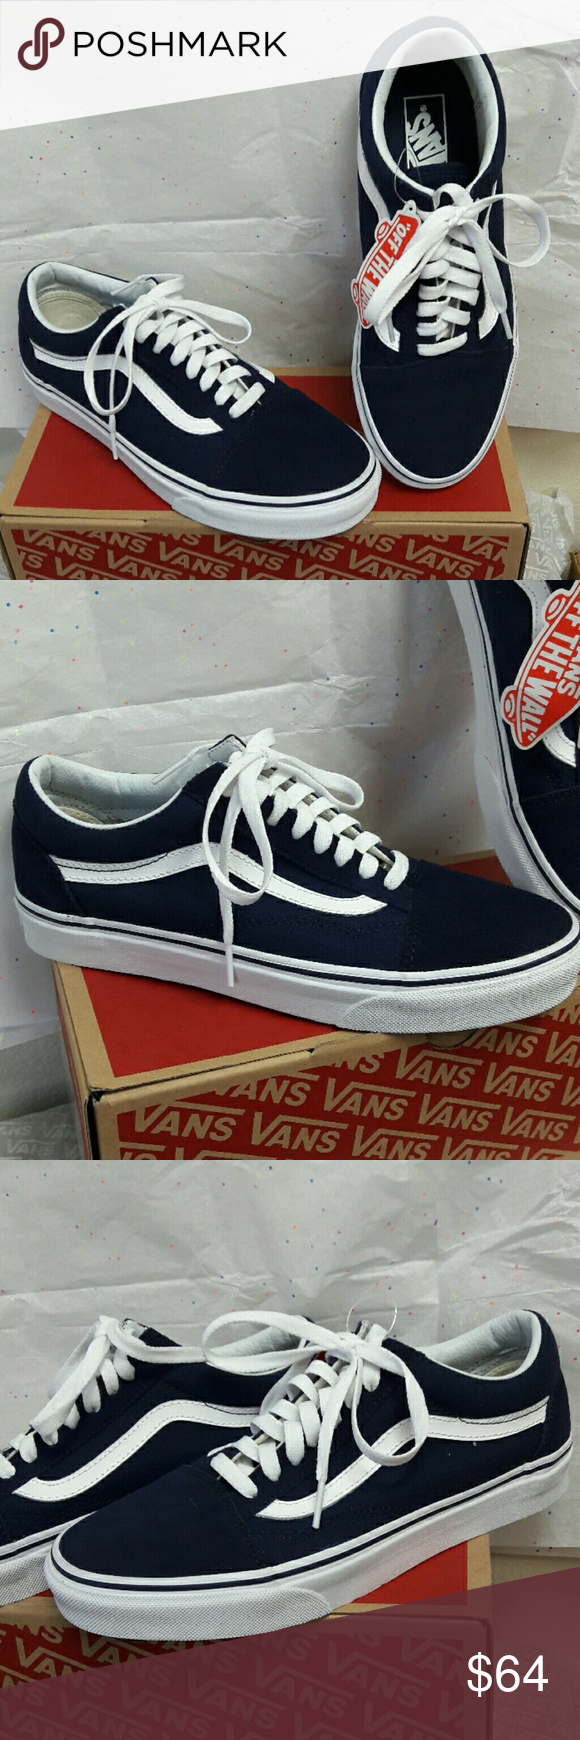 111f46acd328 VANS Old Skool Eclipse True WHT (Navy Blue) Brand New with Tags and Box!  Size 8.5 womens (mens 7) Color is Navy Blue and White! ... Ask me anything!  Vans ...